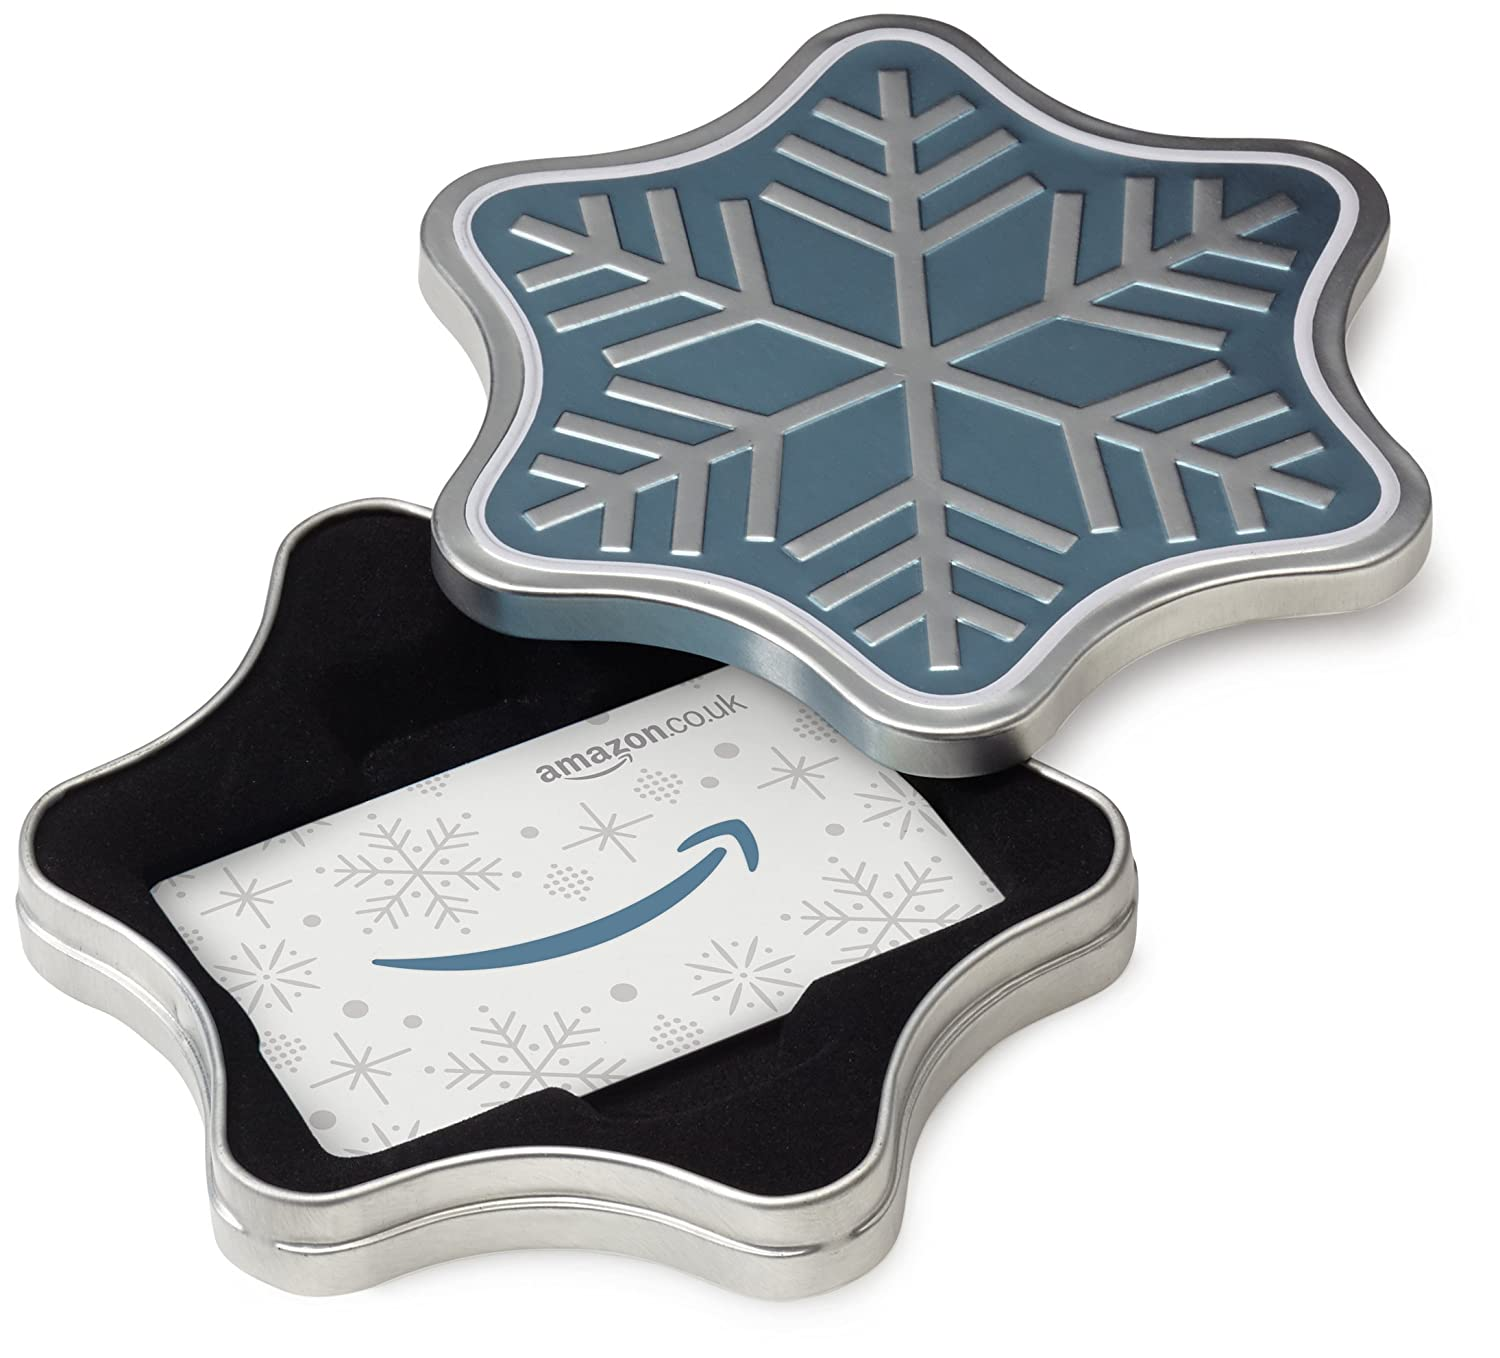 Amazon.co.uk Gift Card for Custom Amount in a Snowflake Tin - FREE One-Day Delivery Amazon EU S.à.r.l. VariableDenomination